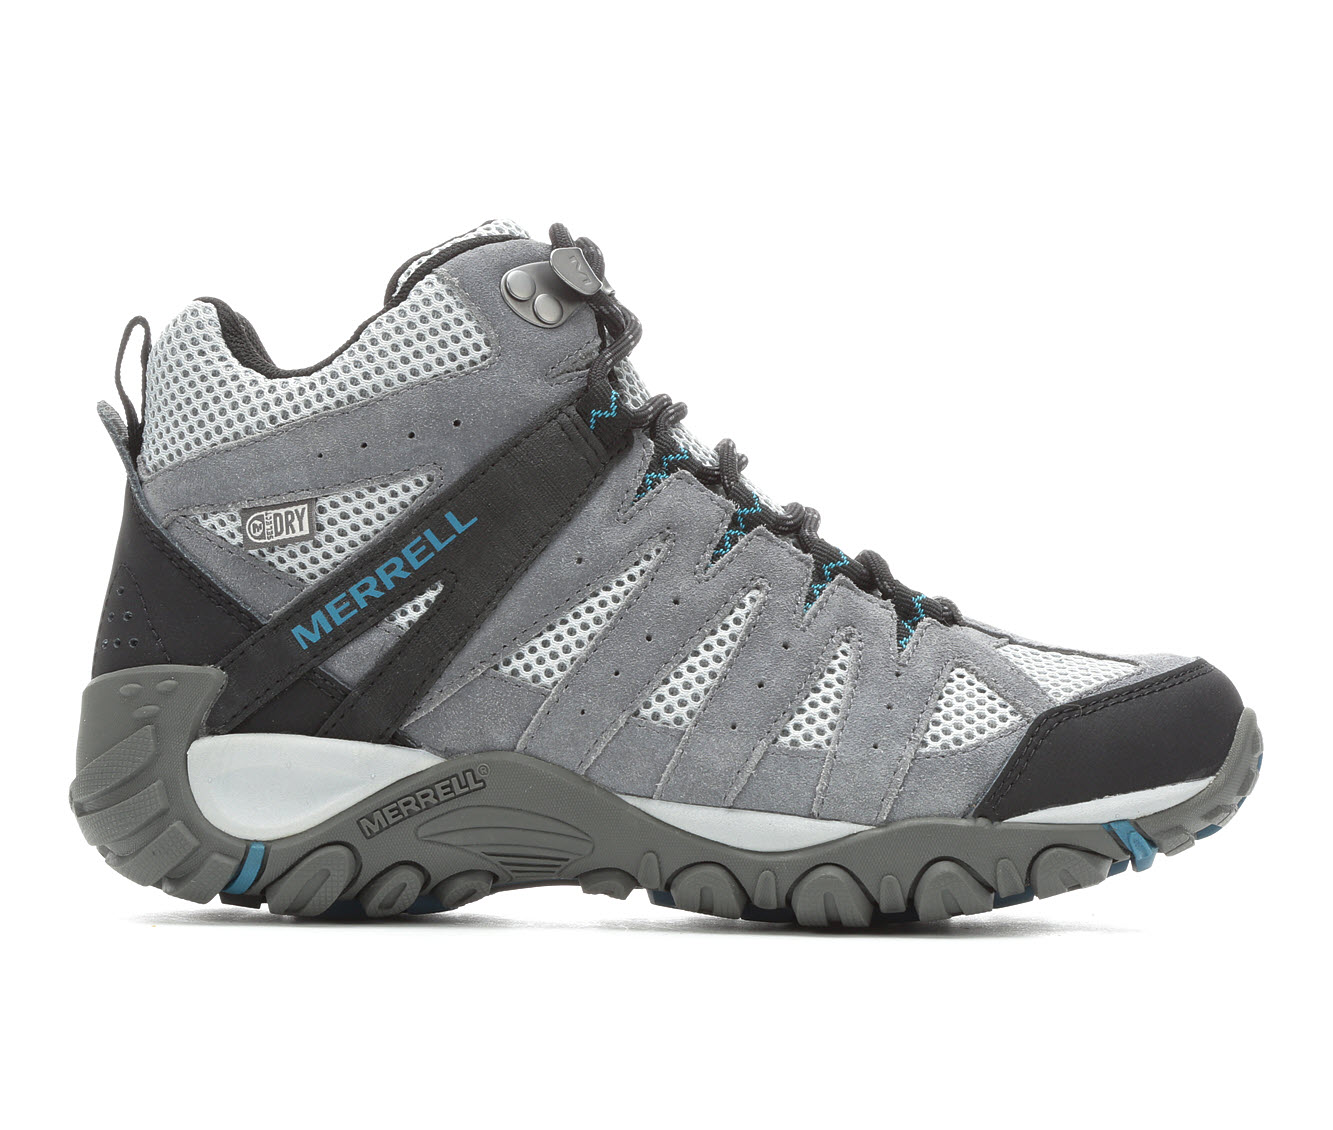 Merrell Accentor 2 mid WP Women's Shoe (Gray Leather)